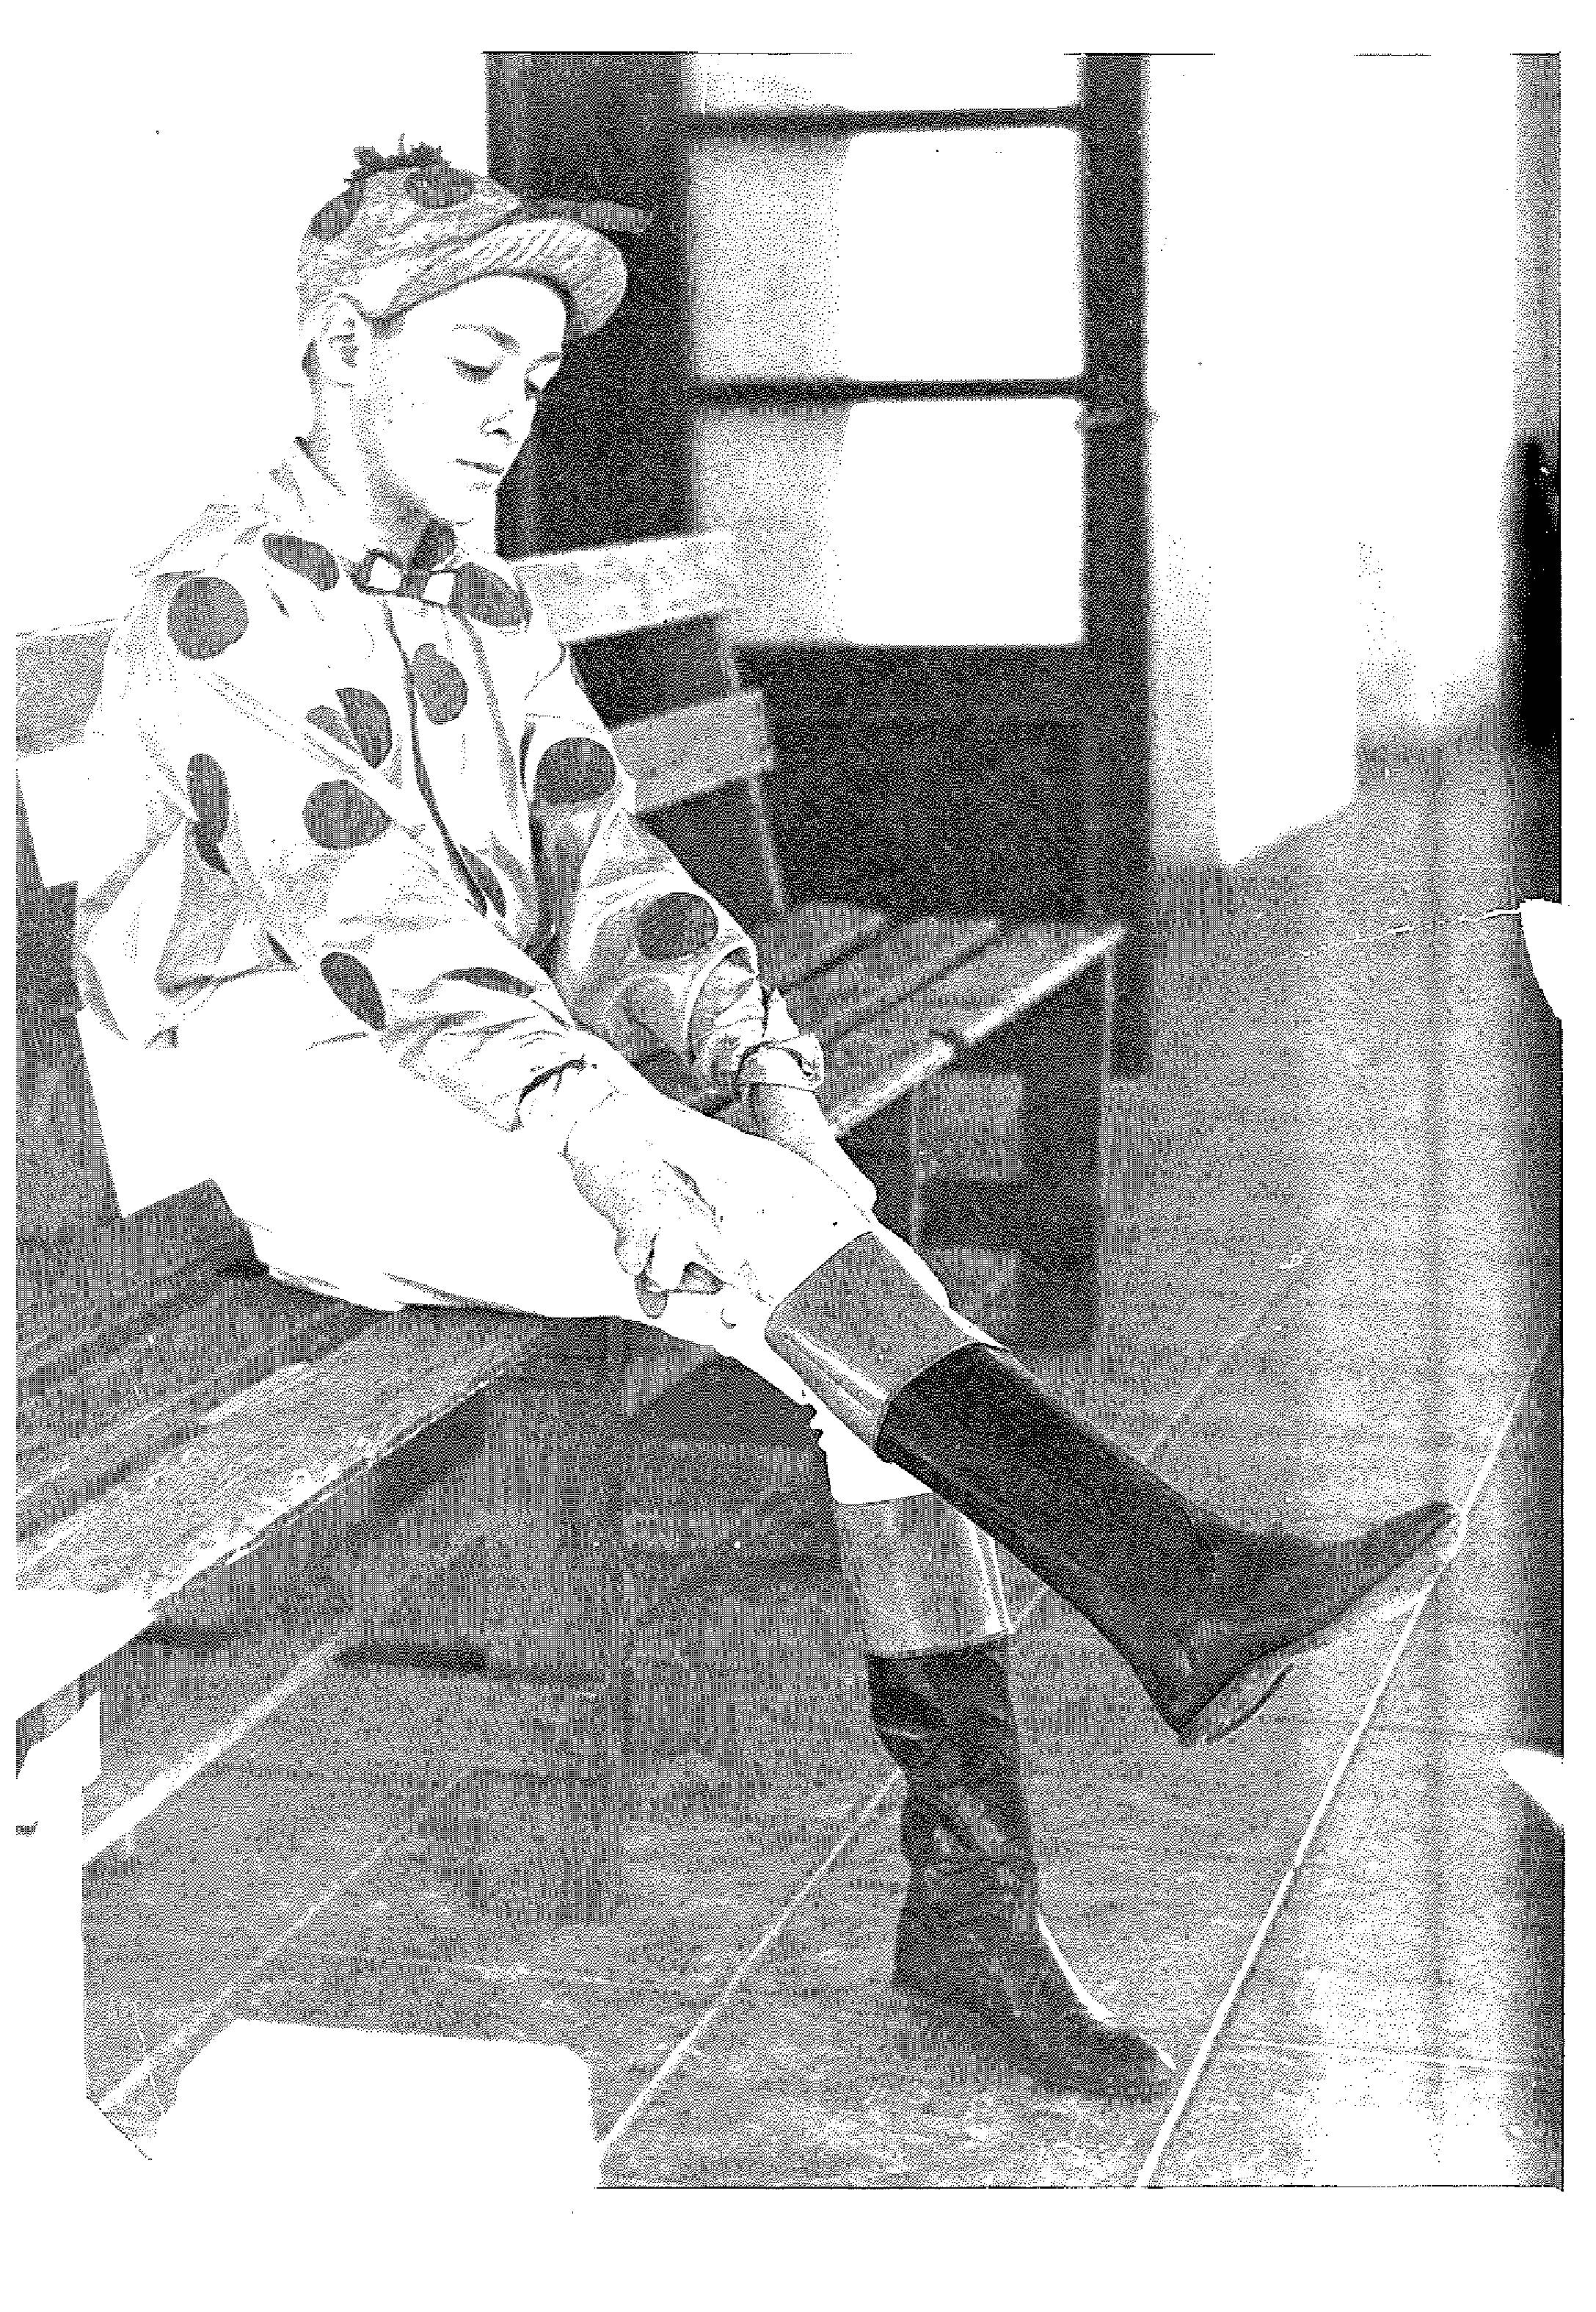 """A Jockey's Life: The True Tall Tales of Gatebreakin' Ray Adair    By Peter J. Sacopulos    Like many baby boomers who entered their teens in the mid-1960s, Raymond Adair Jr. had an issue with his father. But it wasn't a disagreement over long hair, rock music, or his choice of friends. The problem, in young Ray Adair's eyes, was his father's appalling ability to stretch the truth.    Ray Sr. claimed he began life as a foundling, left under a pinion tree by a band of Crow Indians before being adopted by a couple who ran a ranch in New Mexico. That was bad enough, but it was Ray Adair's endless exaggerations about his horseracing career that really embarrassed his son.    In the elder Adair's accounts, he won his first Thoroughbred race at age six. He lost a match race against the legendary Seabiscuit by a nose. He won the Bluegrass Stakes, finished second in the Preakness, and rode in the Kentucky Derby twice. He stood down gangsters and befriended greats like Eddie Arcaro. It was all too much.    """"Growing up, I thought Dad was just a bullshitter. Or a horseshitter, anyway,"""" Ray Jr. says with a soft chuckle. """"Imagine how I felt when I figured out all those horseracing stories were true.""""    Throughout his childhood, Ray Jr. had been aware that his father was a jockey and horse trainer. His family, including his mother Evelyn and his older sister Rayette, had tagged along on the racing circuit for years. But Ray Sr.'s racing days and the Adair family's nomadic ways came to an end in 1961. Evelyn had been diagnosed with cancer and could no longer travel. The family settled in Phoenix, and Ray Sr. hung up his silks and worked for a fruit distributor. Evelyn died in 1963, and Ray moved the family to Window Rock to work for his brother-in-law, who taught him how to operate construction equipment.    In Colorado for an unrelated job interview in 1964, Ray decided to call Thoroughbred breeder Conyer (""""Connie"""") Stewart. Connie Stewart had first seen Ray ride at the Jamaica R"""